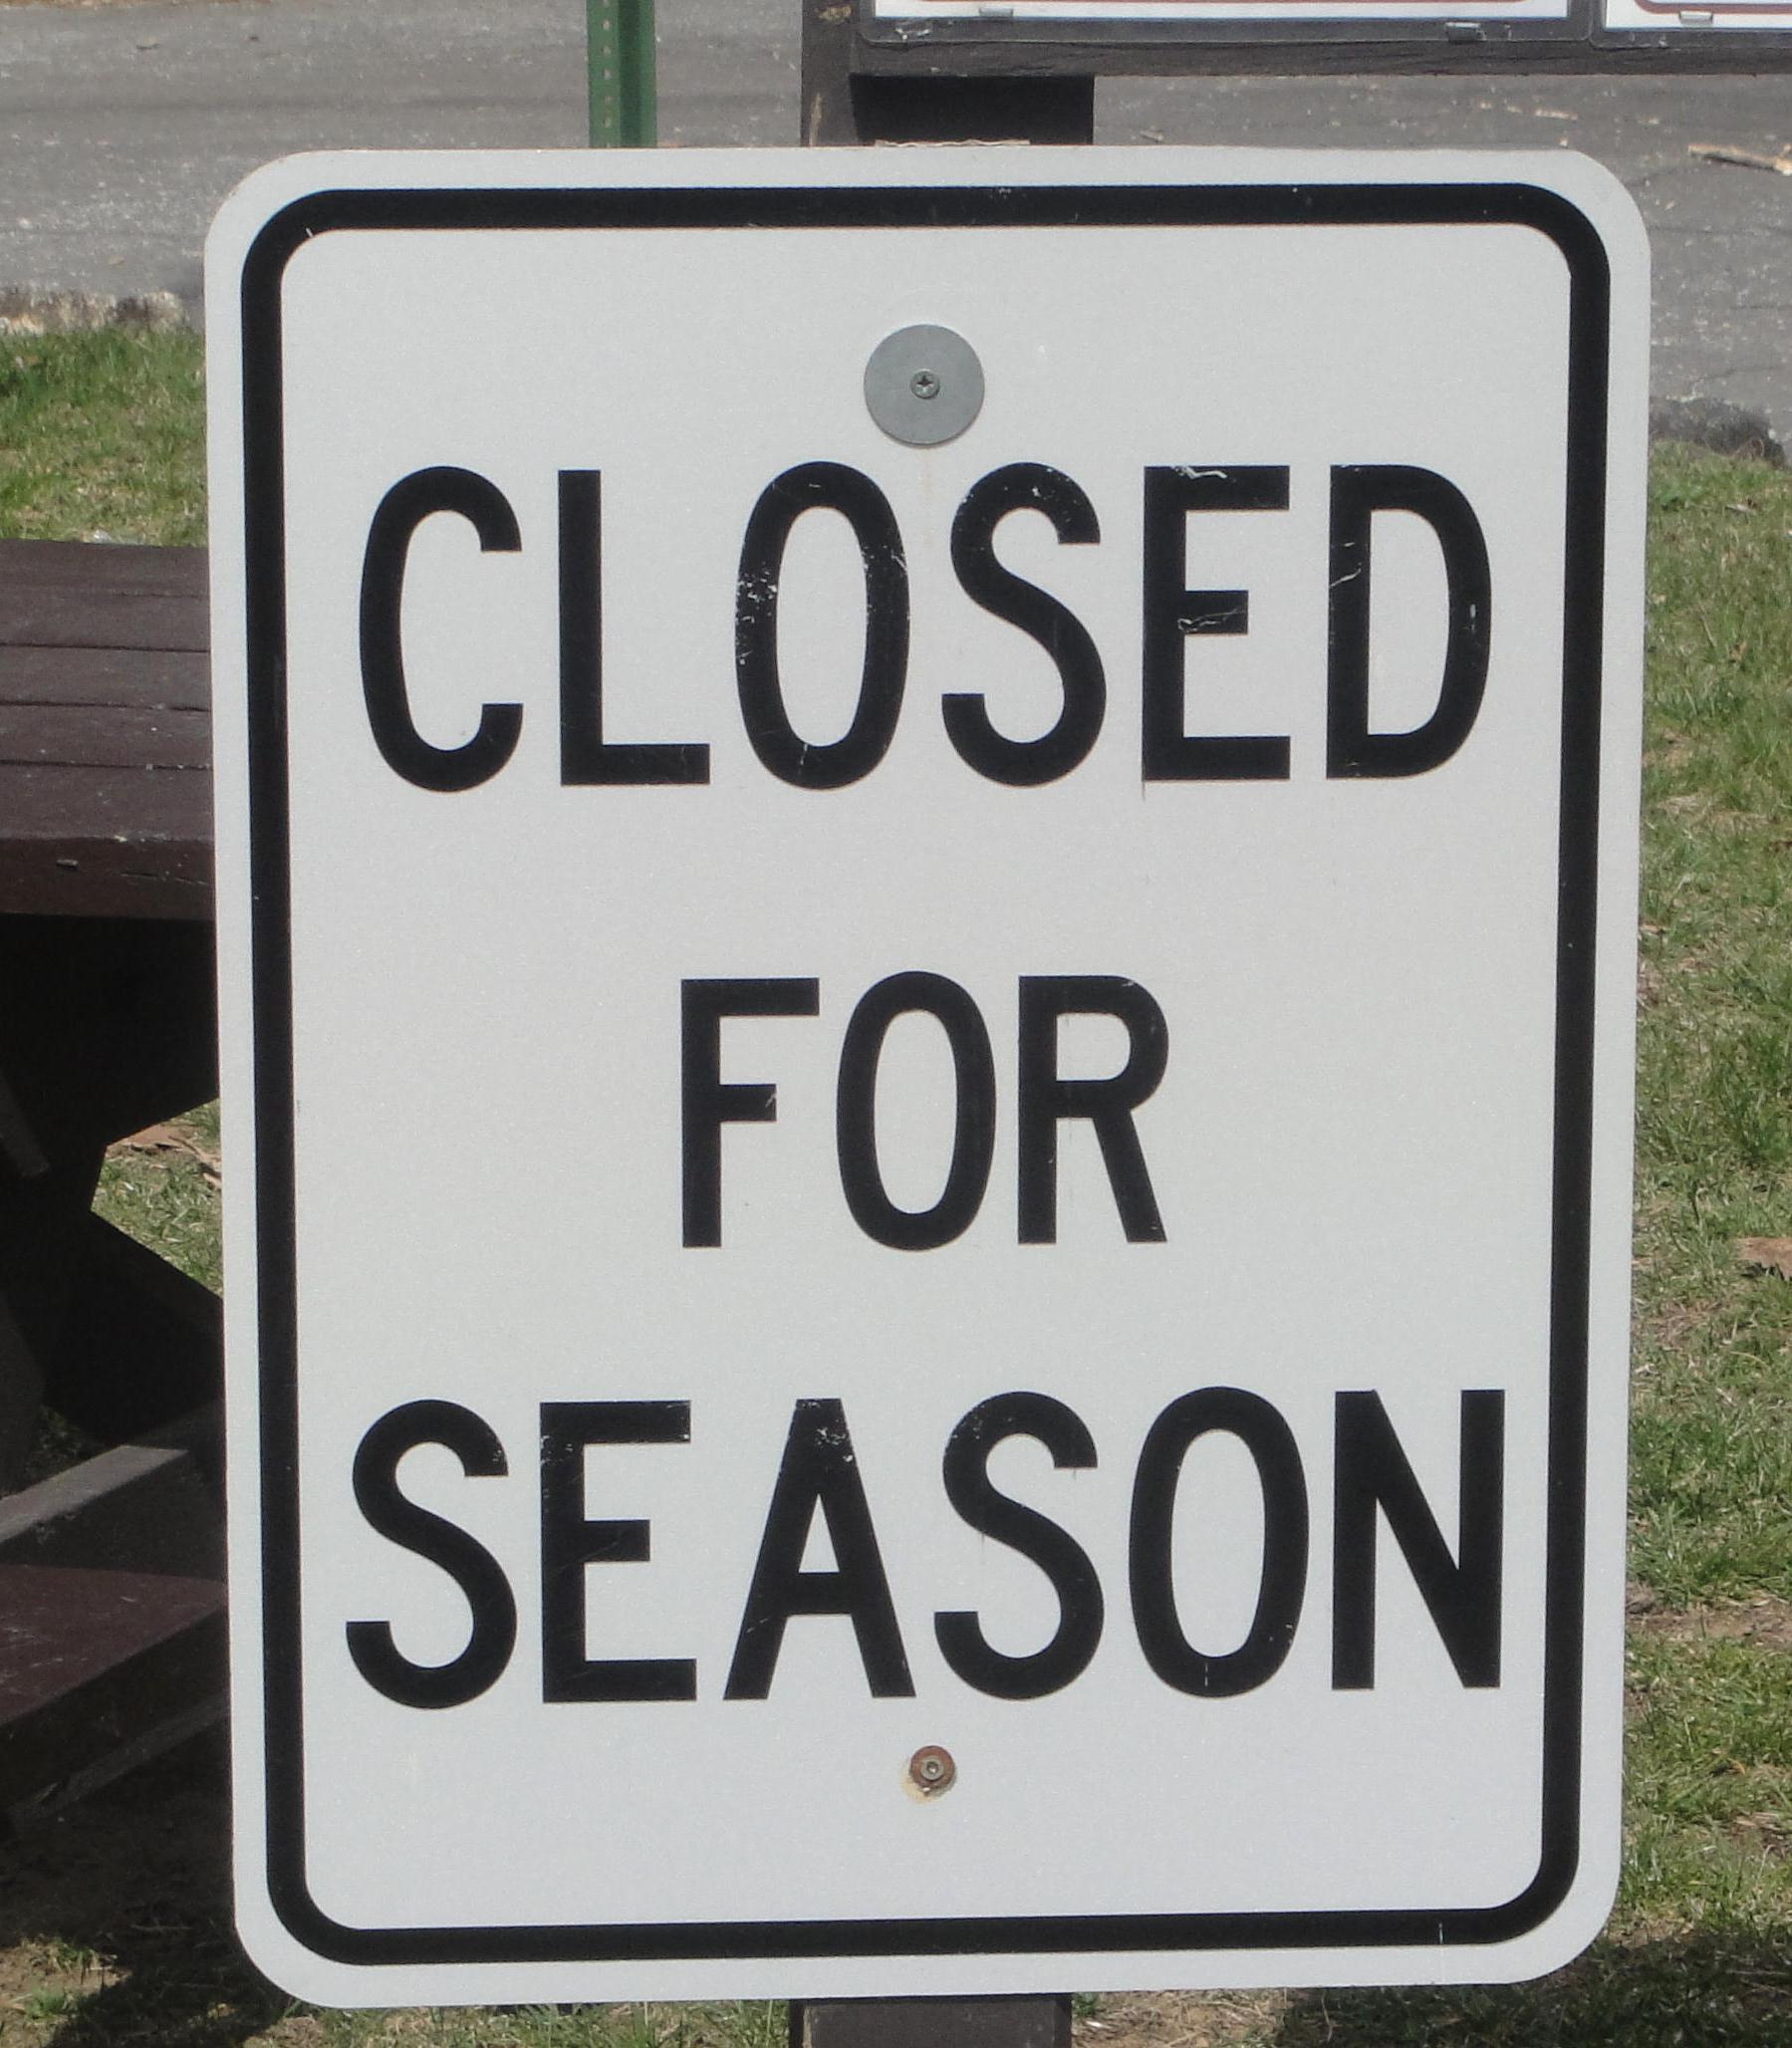 04closed For Season  Winslow Sp  The Park Explorer. Courageous Signs Of Stroke. Birth Signs. Hockey Signs Of Stroke. Dinner Signs Of Stroke. Jewelry Signs Of Stroke. Between Signs. Infarction Signs. Basketball Game Signs Of Stroke